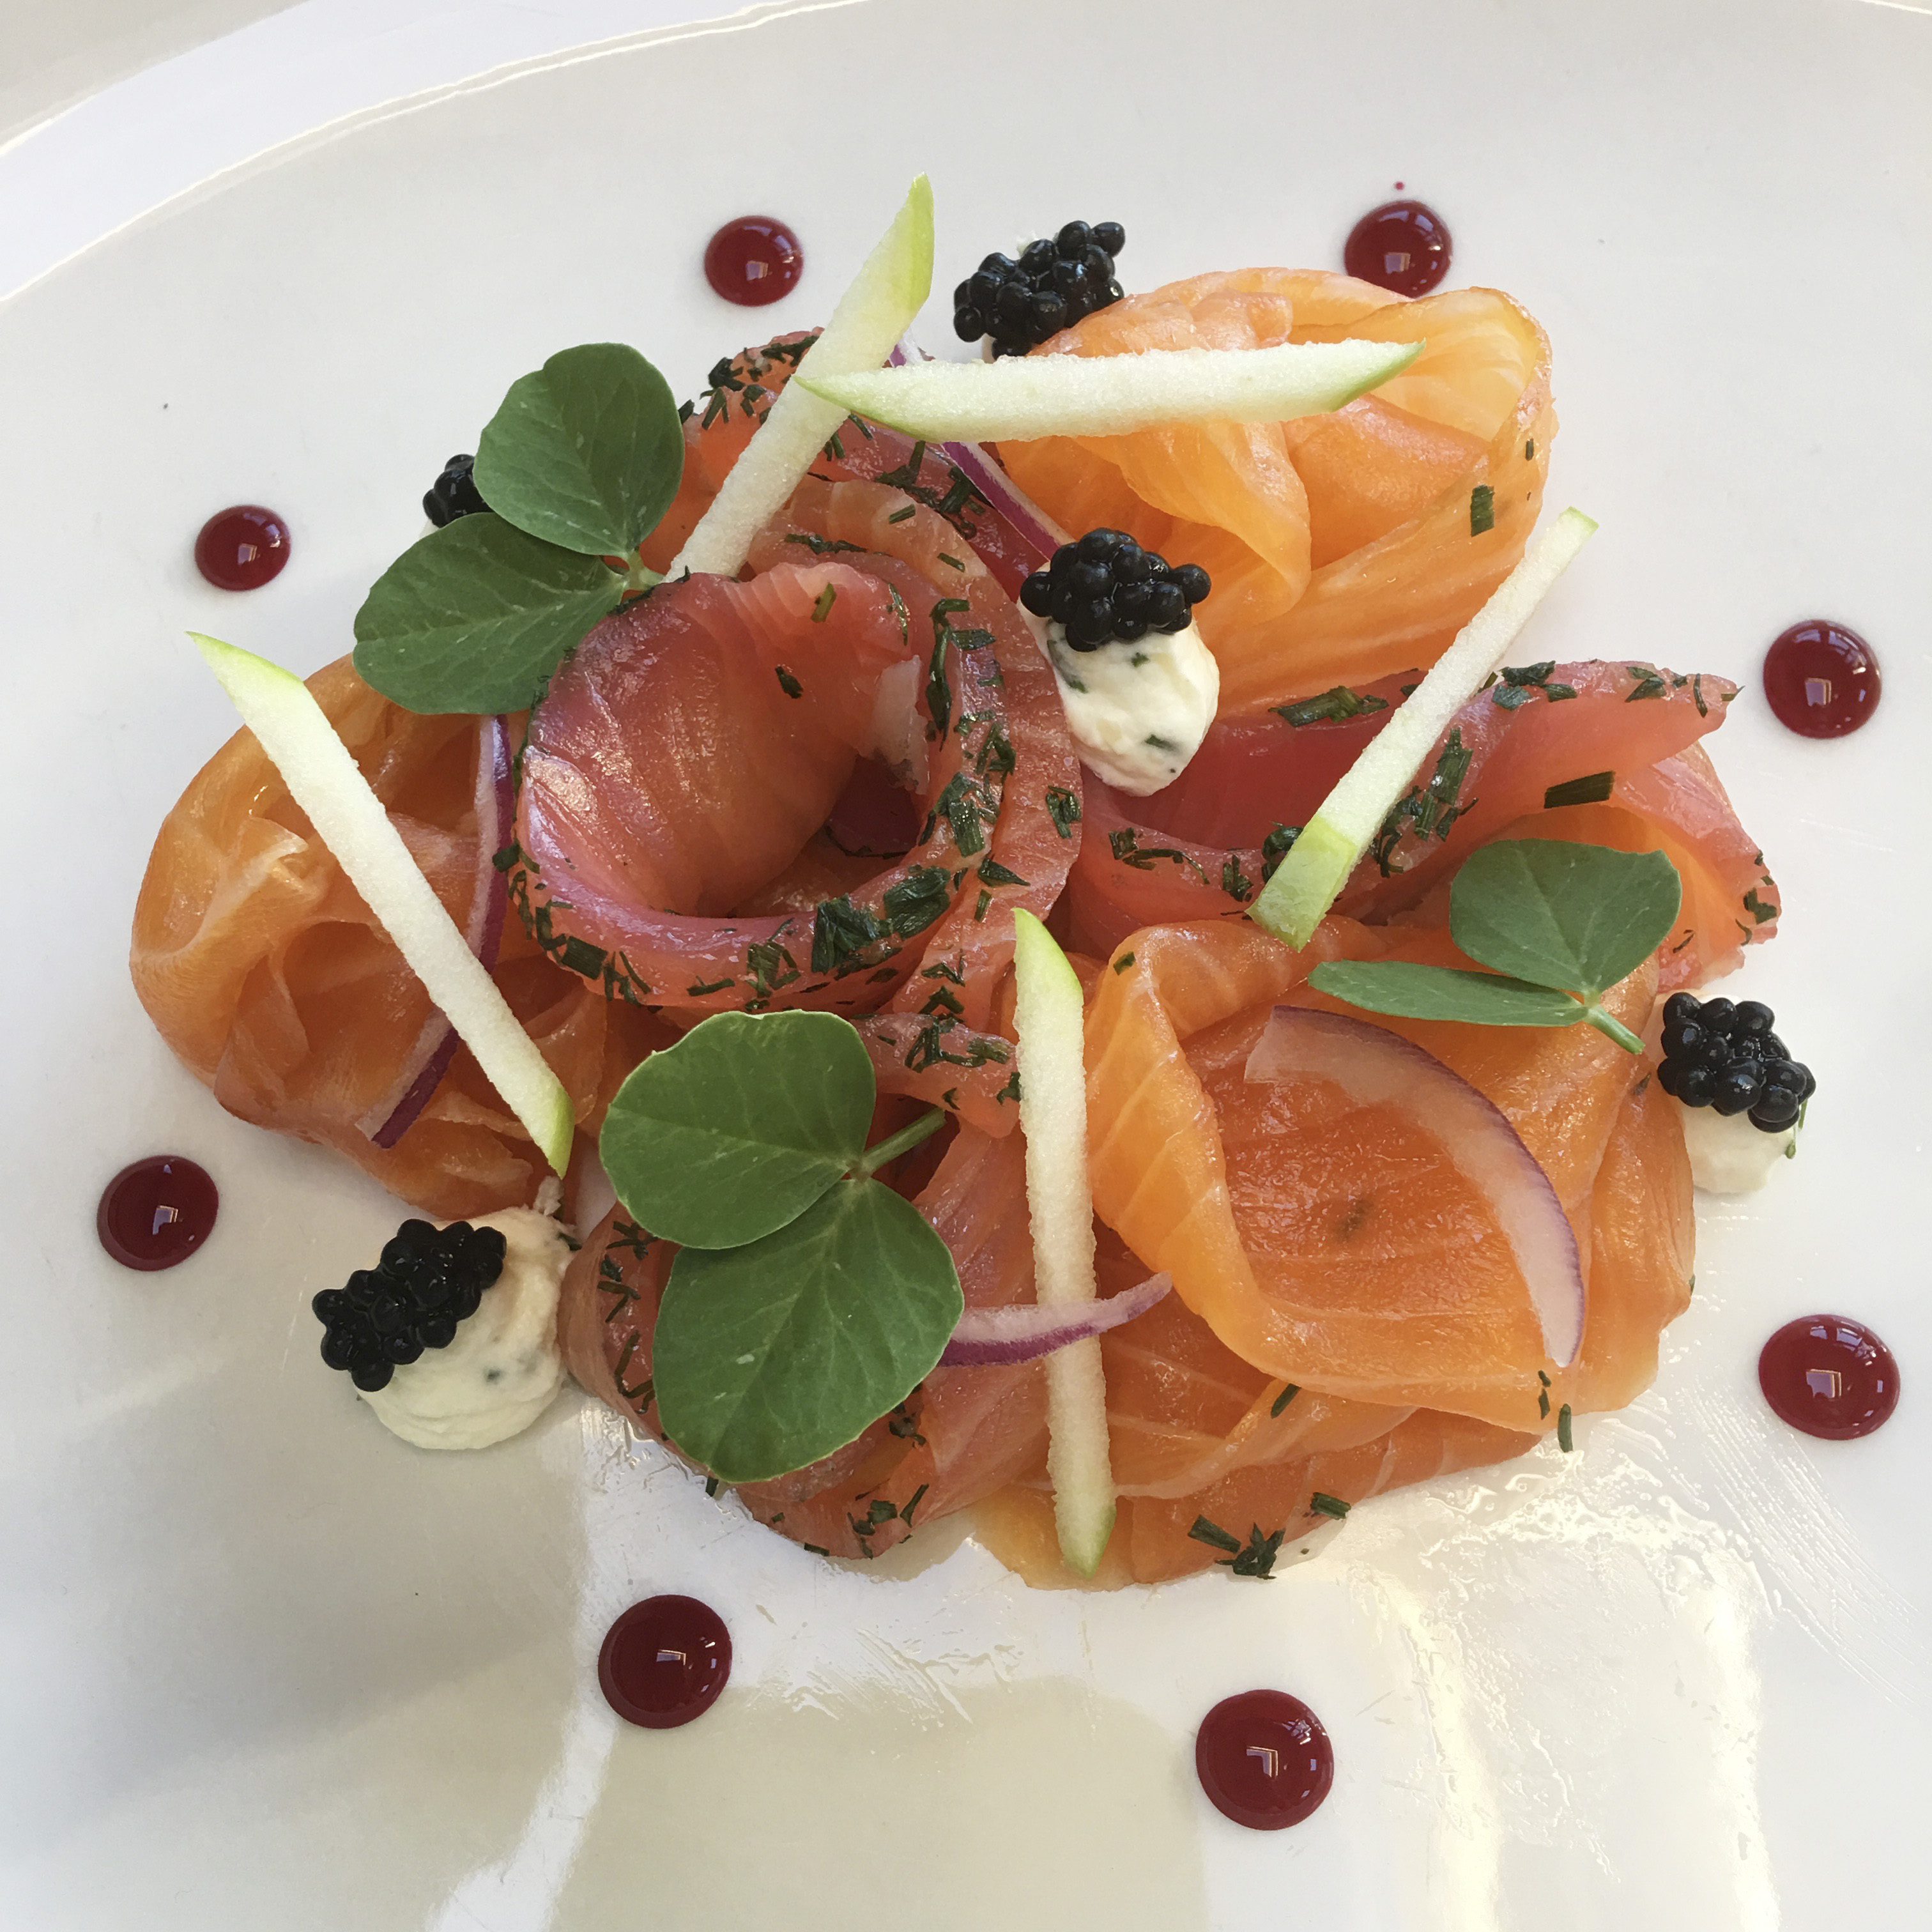 Beetroot and Caorunn gin home-cured salmon at Hebridean lodge